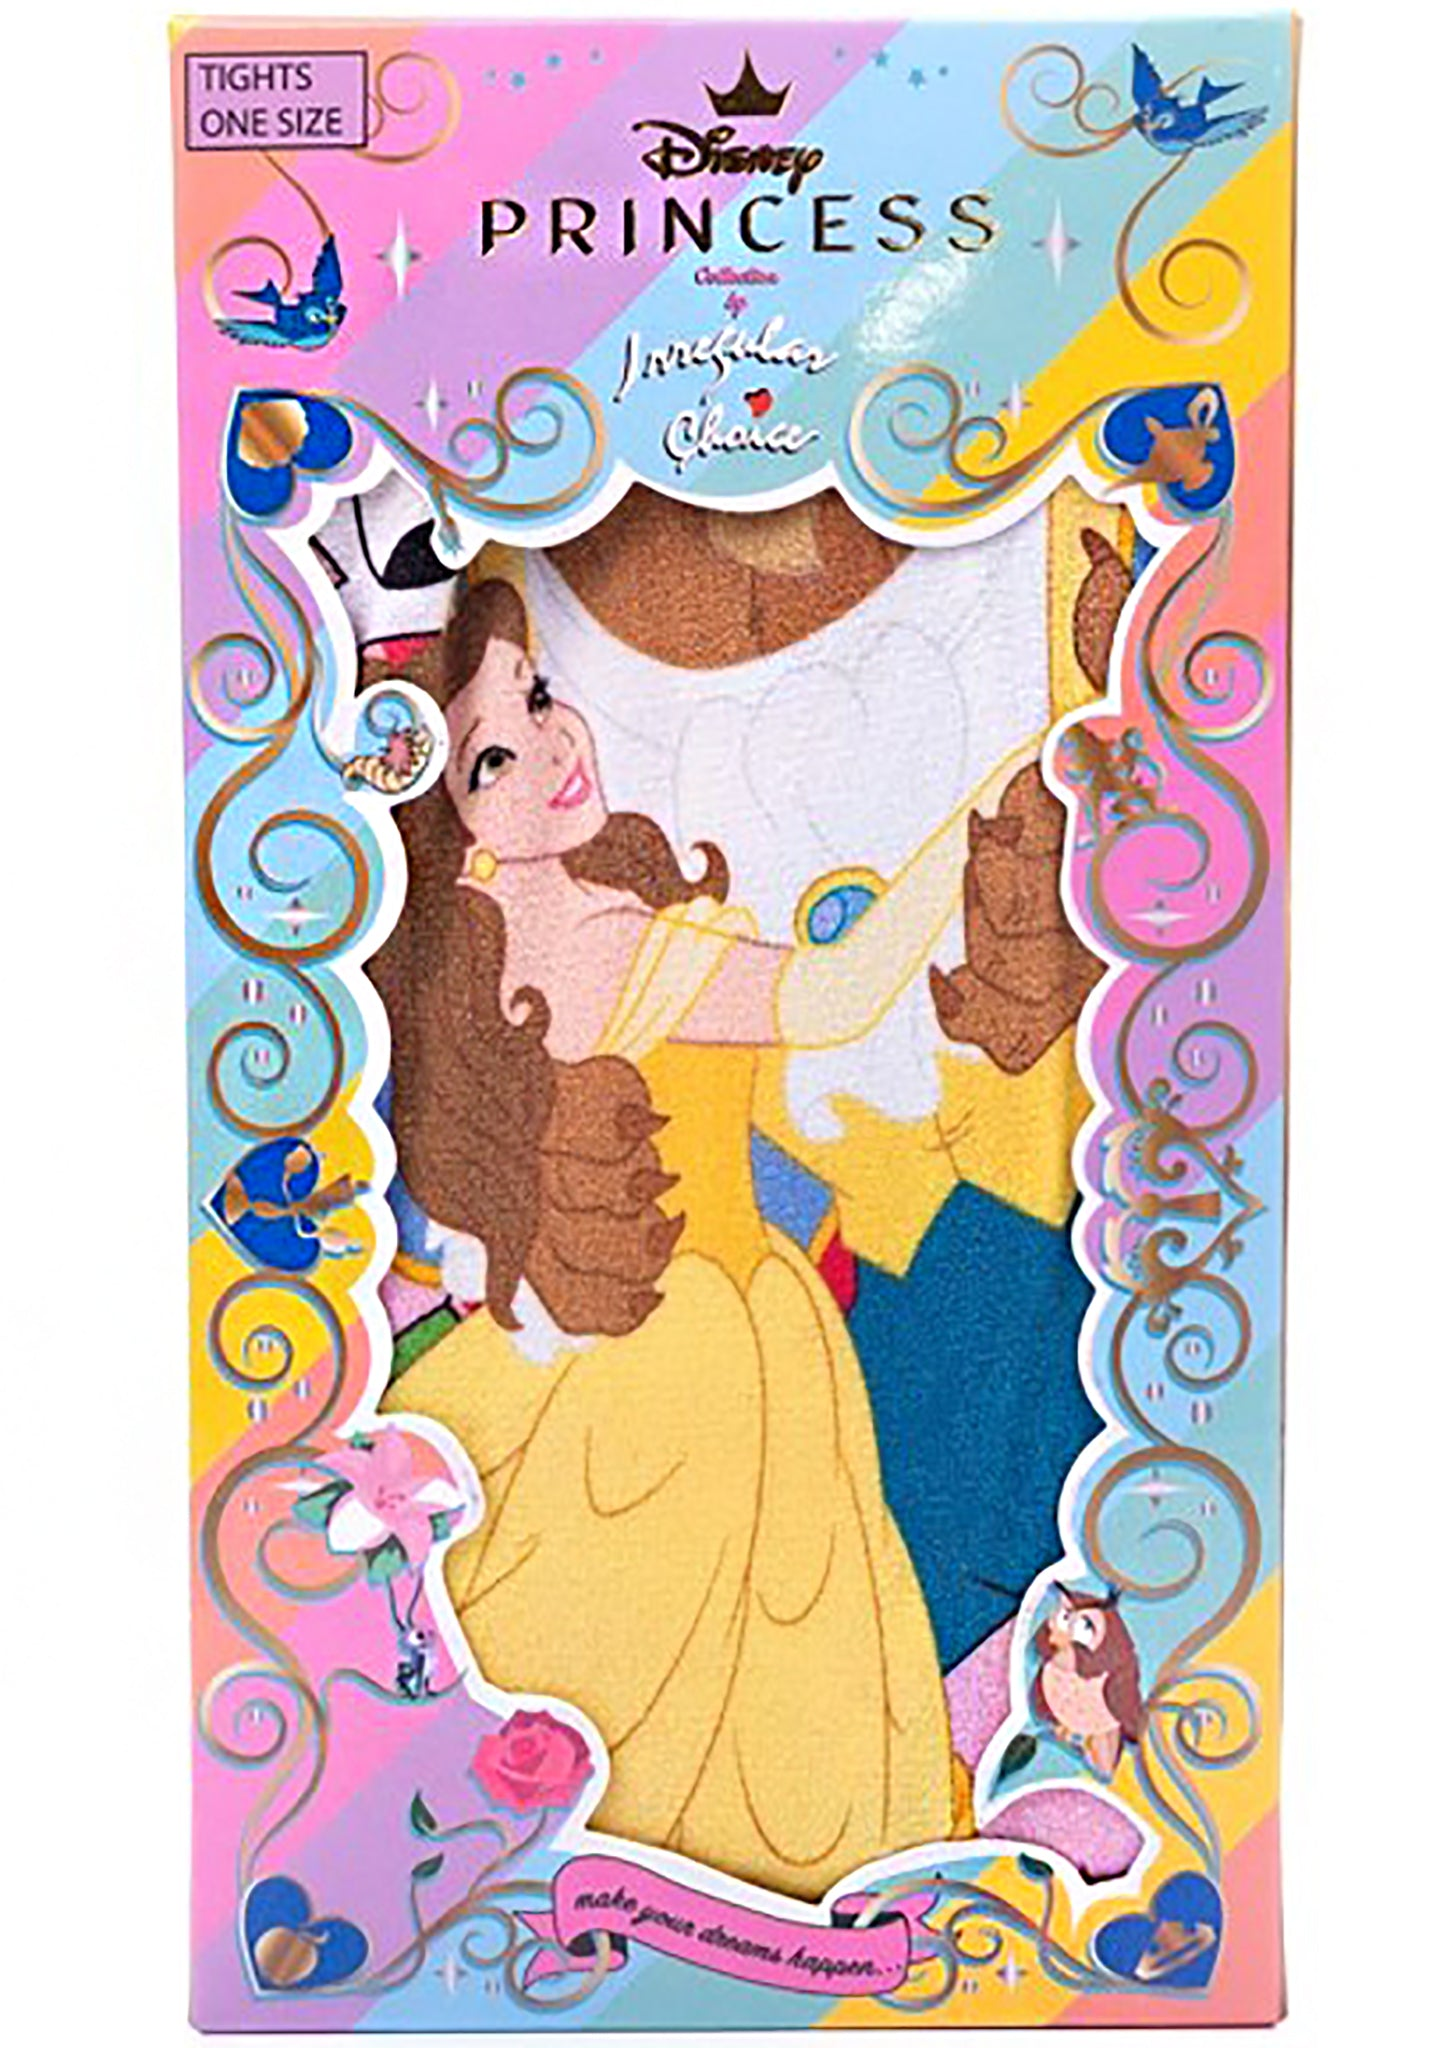 X Disney Beauty and the Beast As Old As Time Tights